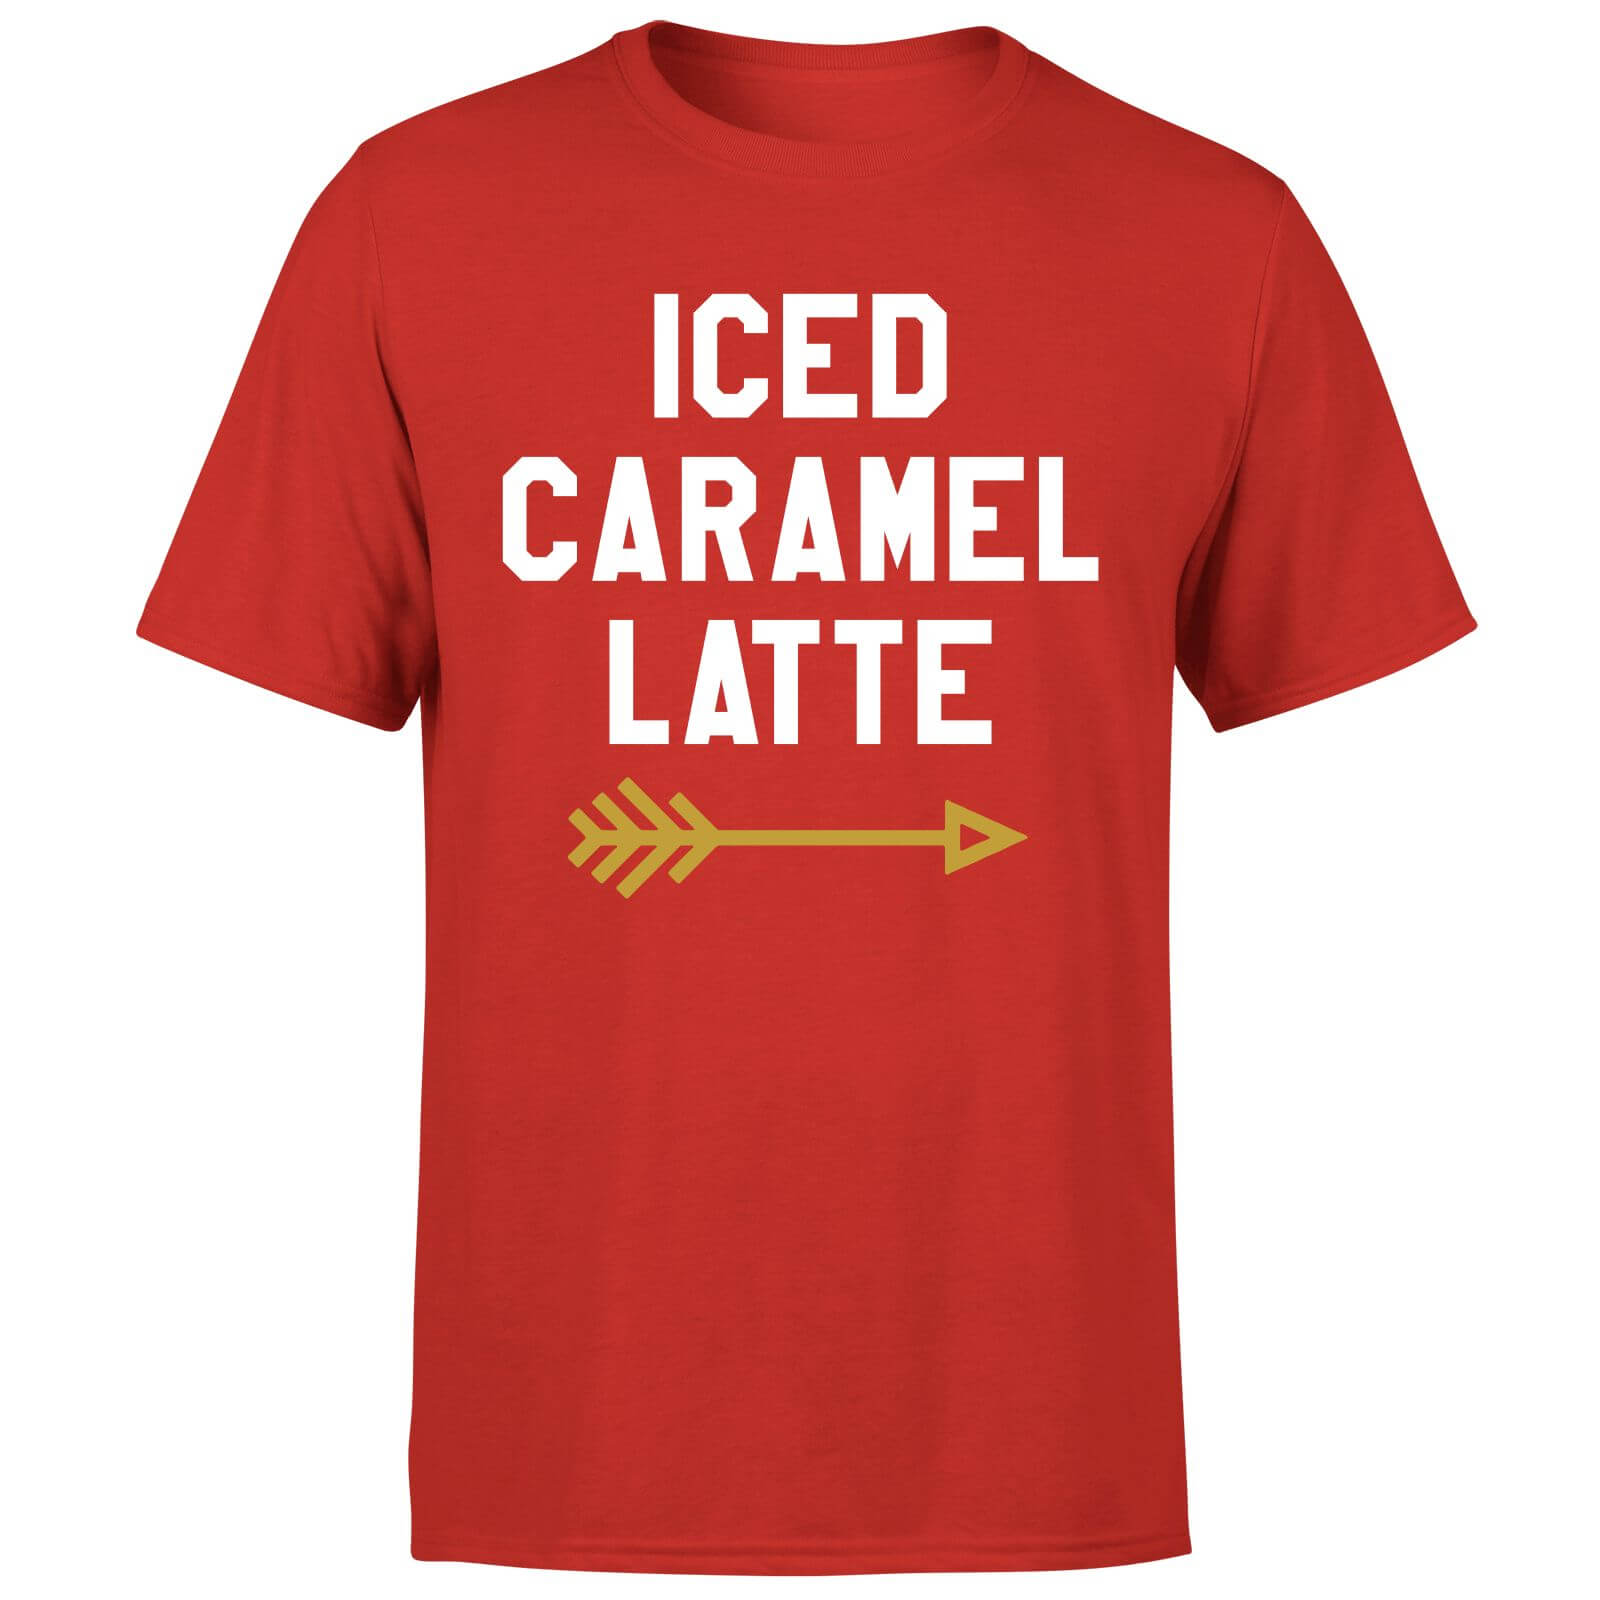 Iced Caramel Latte T-Shirt - Red